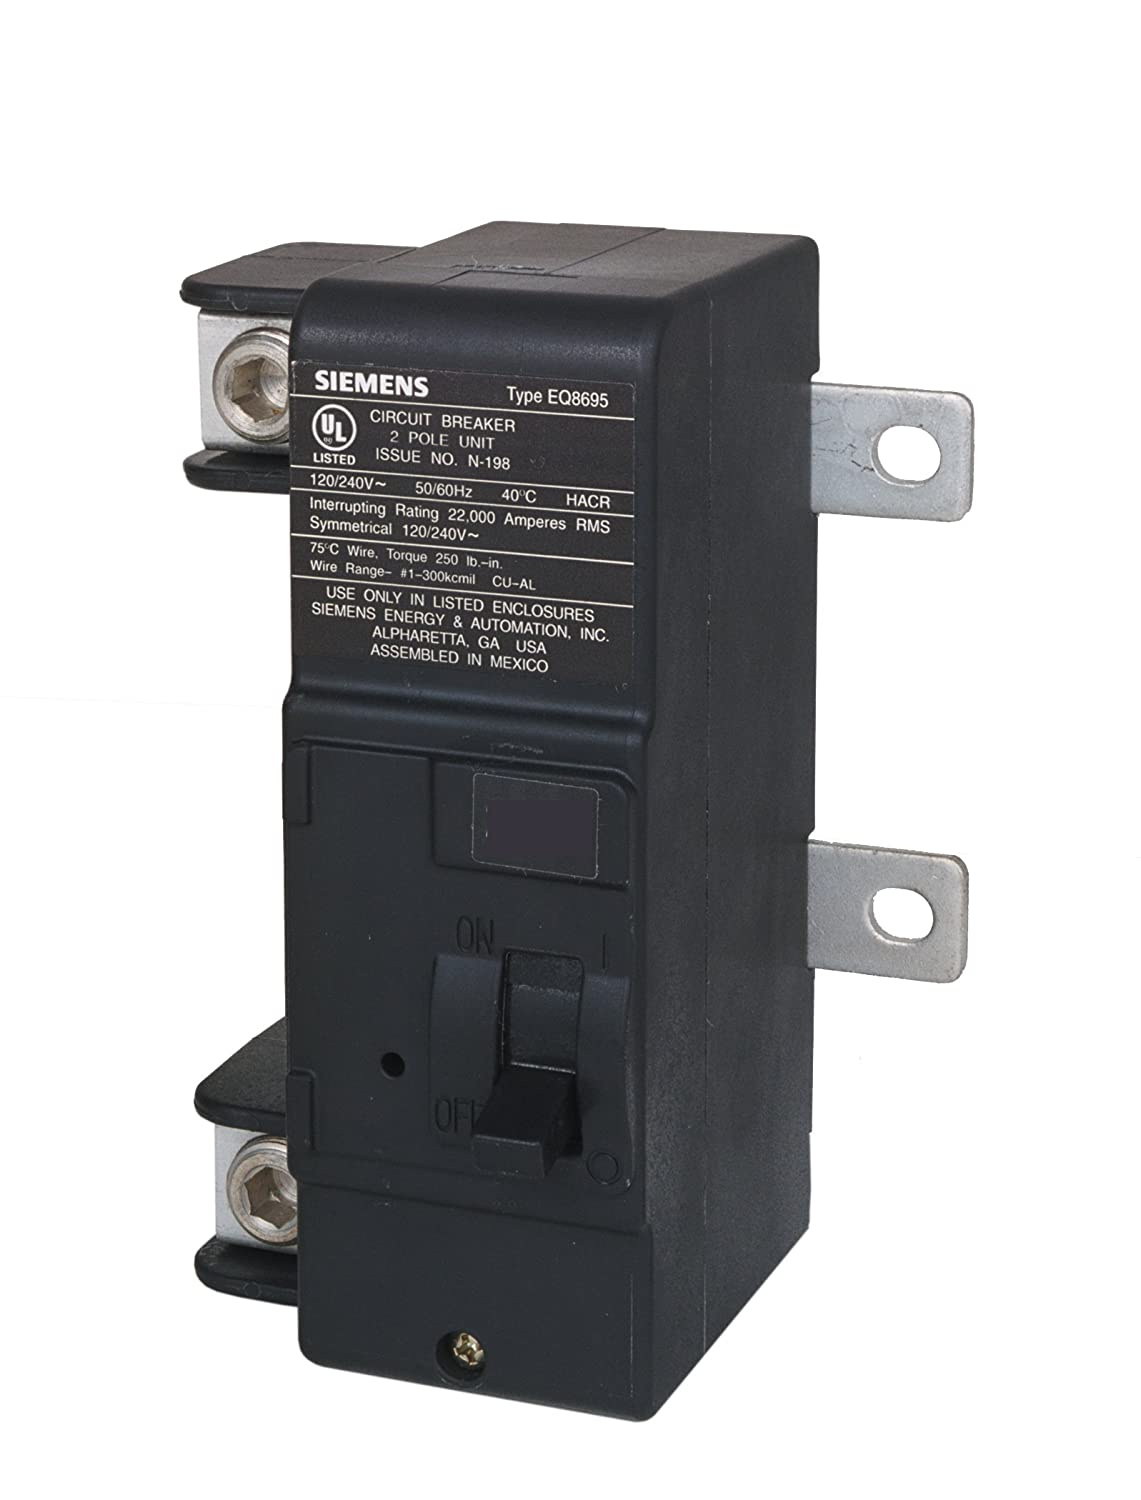 Murray MBK200M 200-Amp Main Circuit Breaker for Use in Rock Solid Type Load Centers